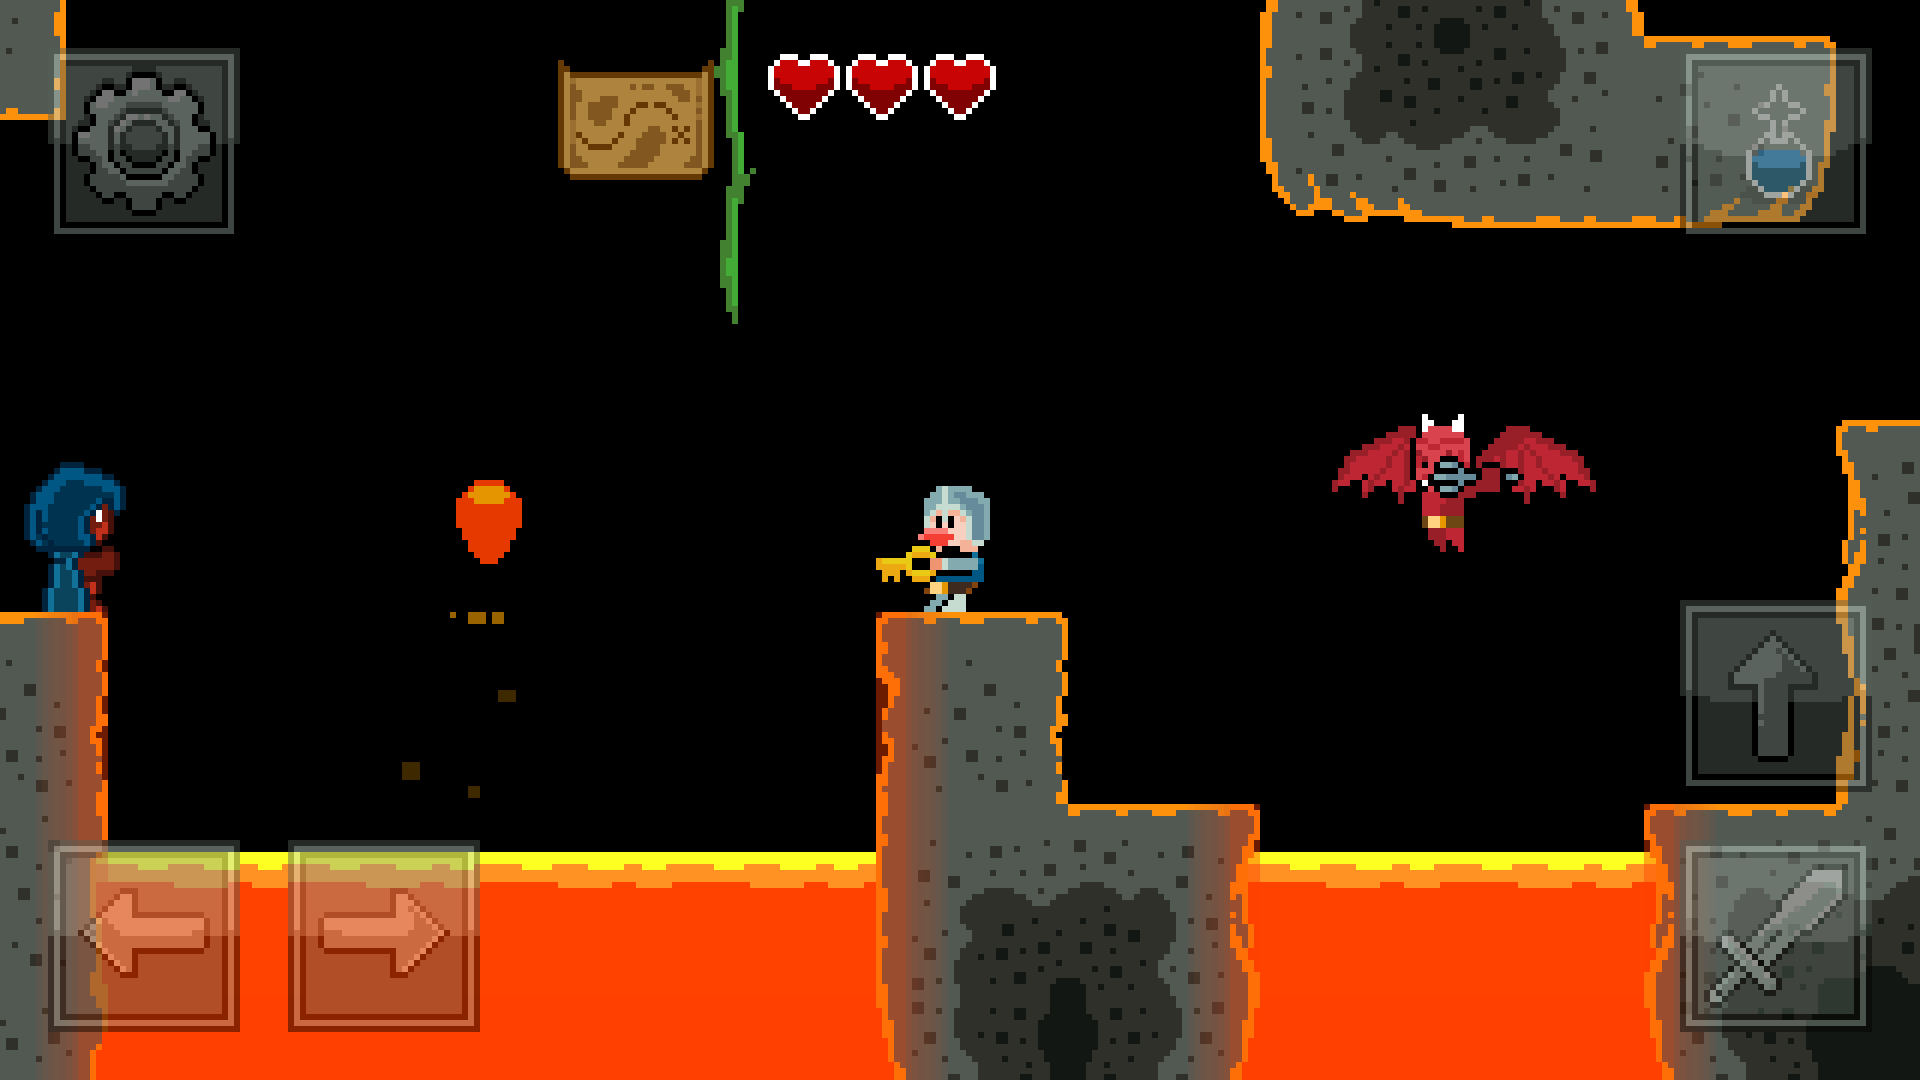 Cracked Crusaders is an upcoming fast-paced action-platformer for iOS and Android